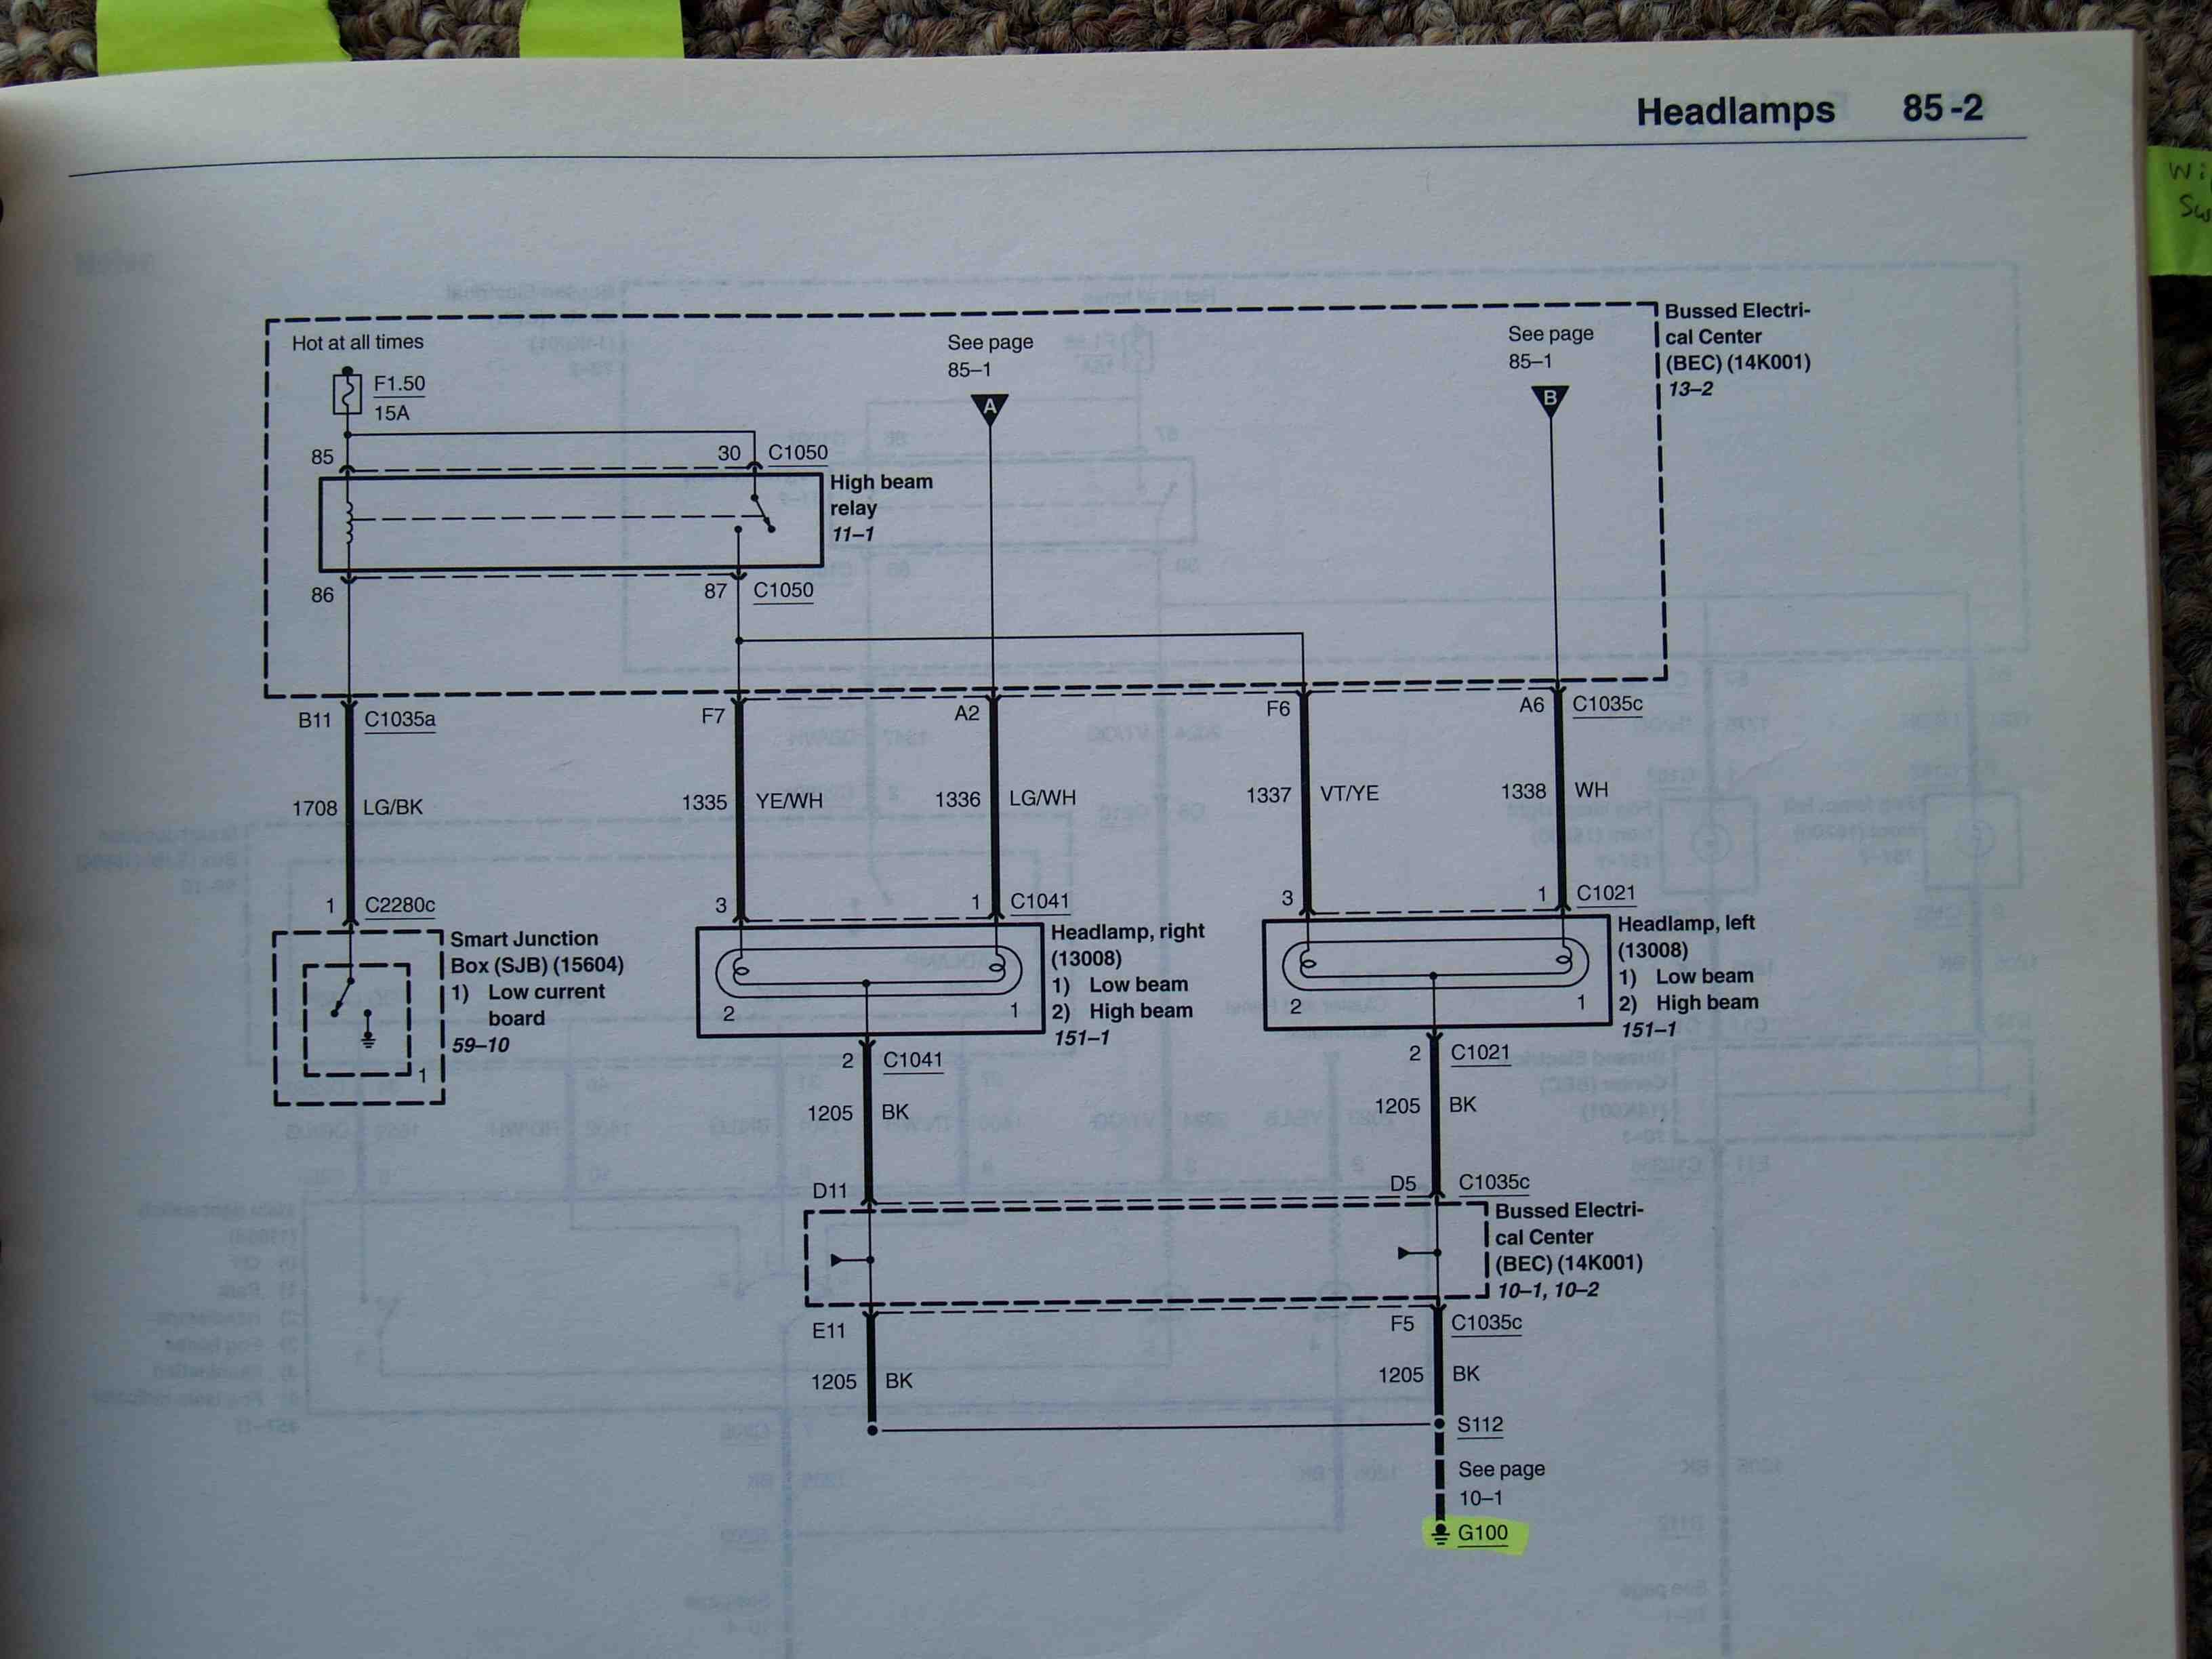 wiring diagram for 2005 ford mustang wiring diagram for 1996 ford mustang 2008 gt headlight wiring diagram? - ford mustang forum